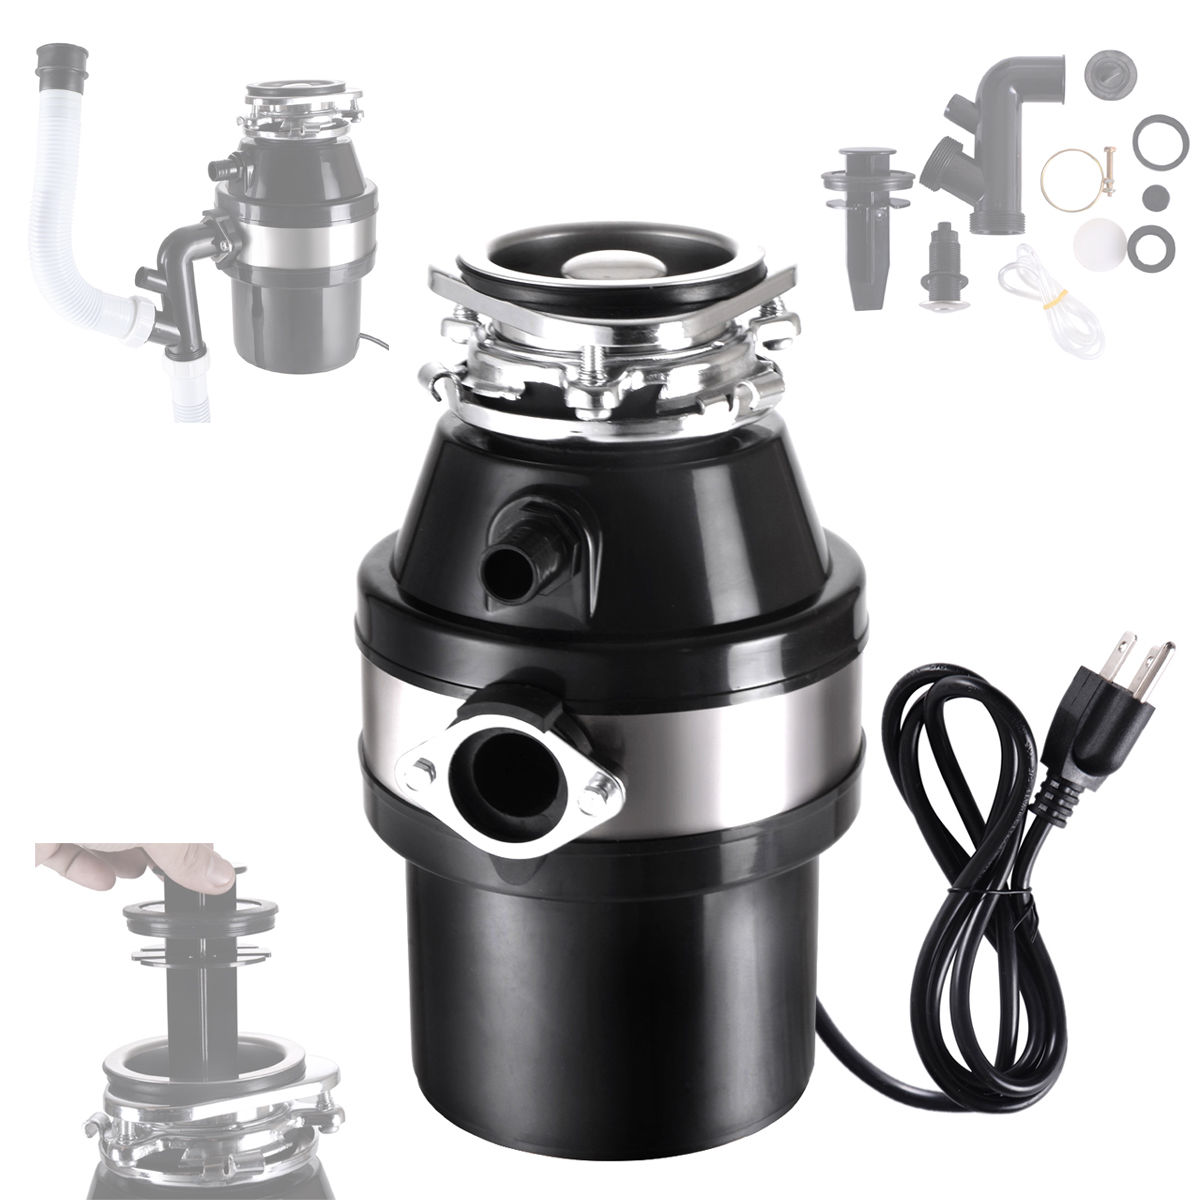 1.0 HP Continuous Feed Garbage Disposal Home Kitchen Food Waste w/ Plug 2800 RPM